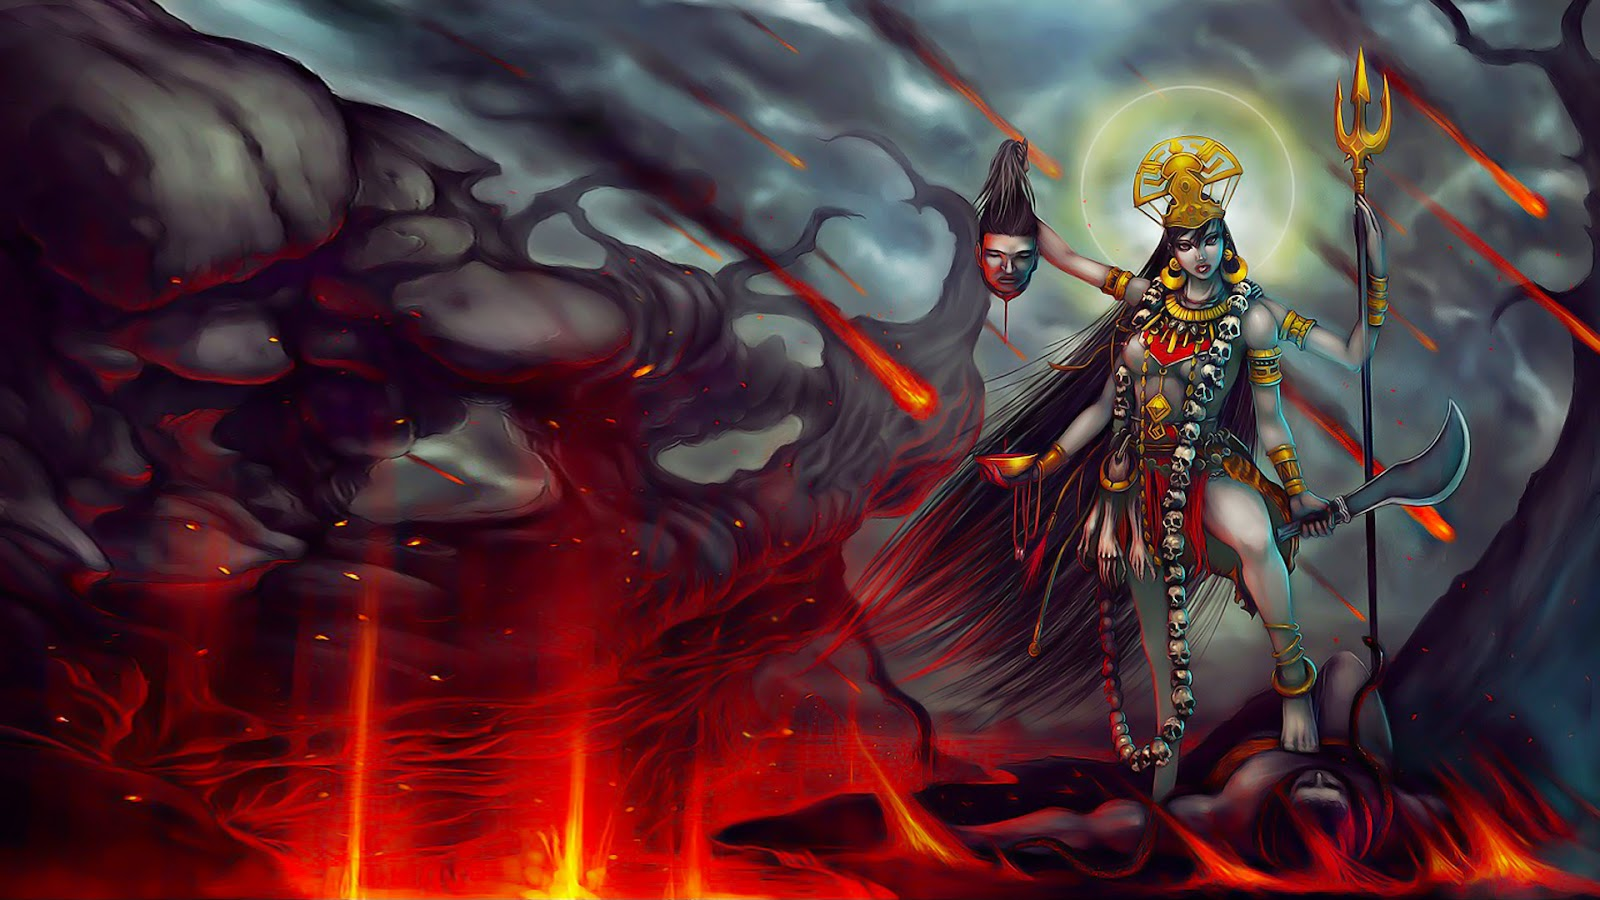 Must see Wallpaper Angry Shiva - s11  Trends_851356      .jpg